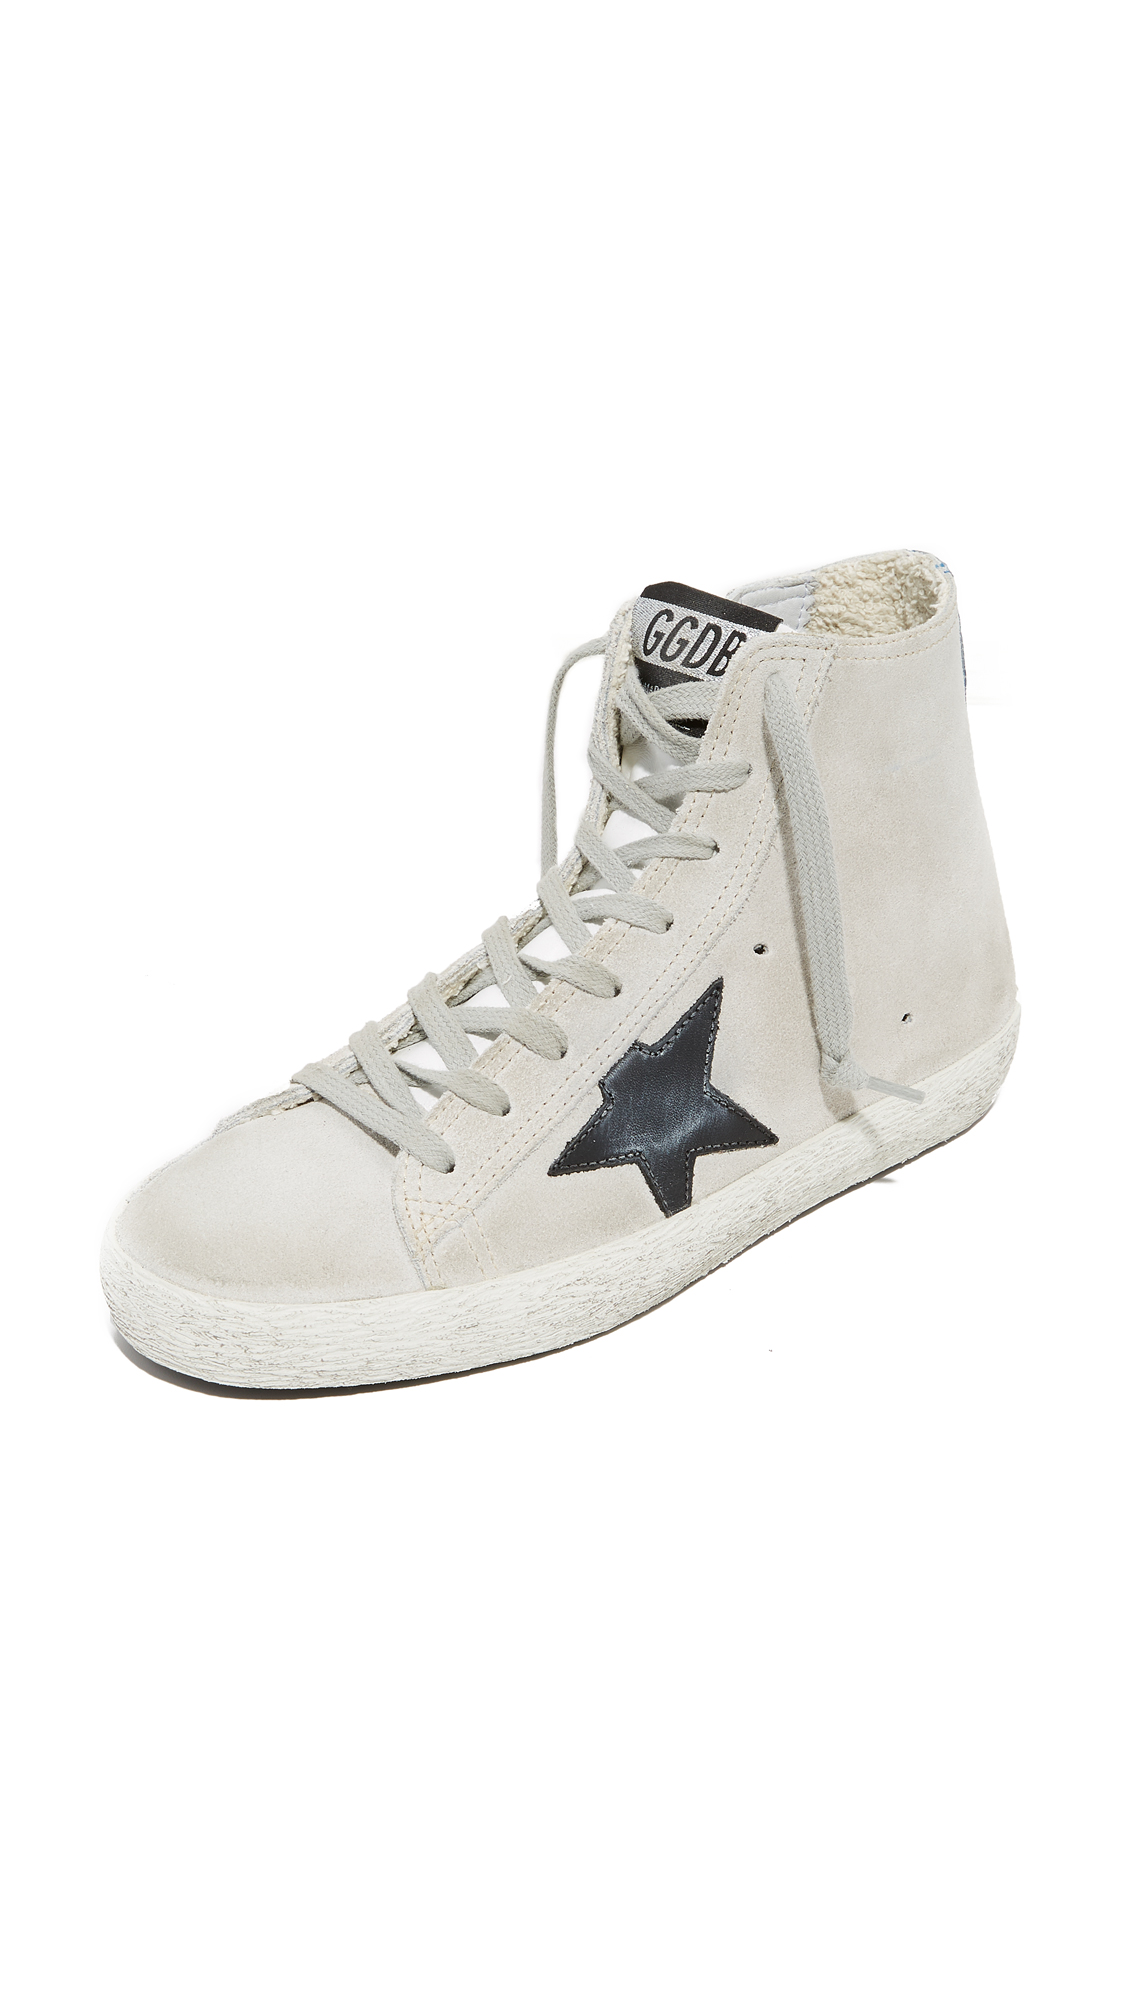 Golden Goose Francy High Top Sneakers - Pearl/Traffic Light